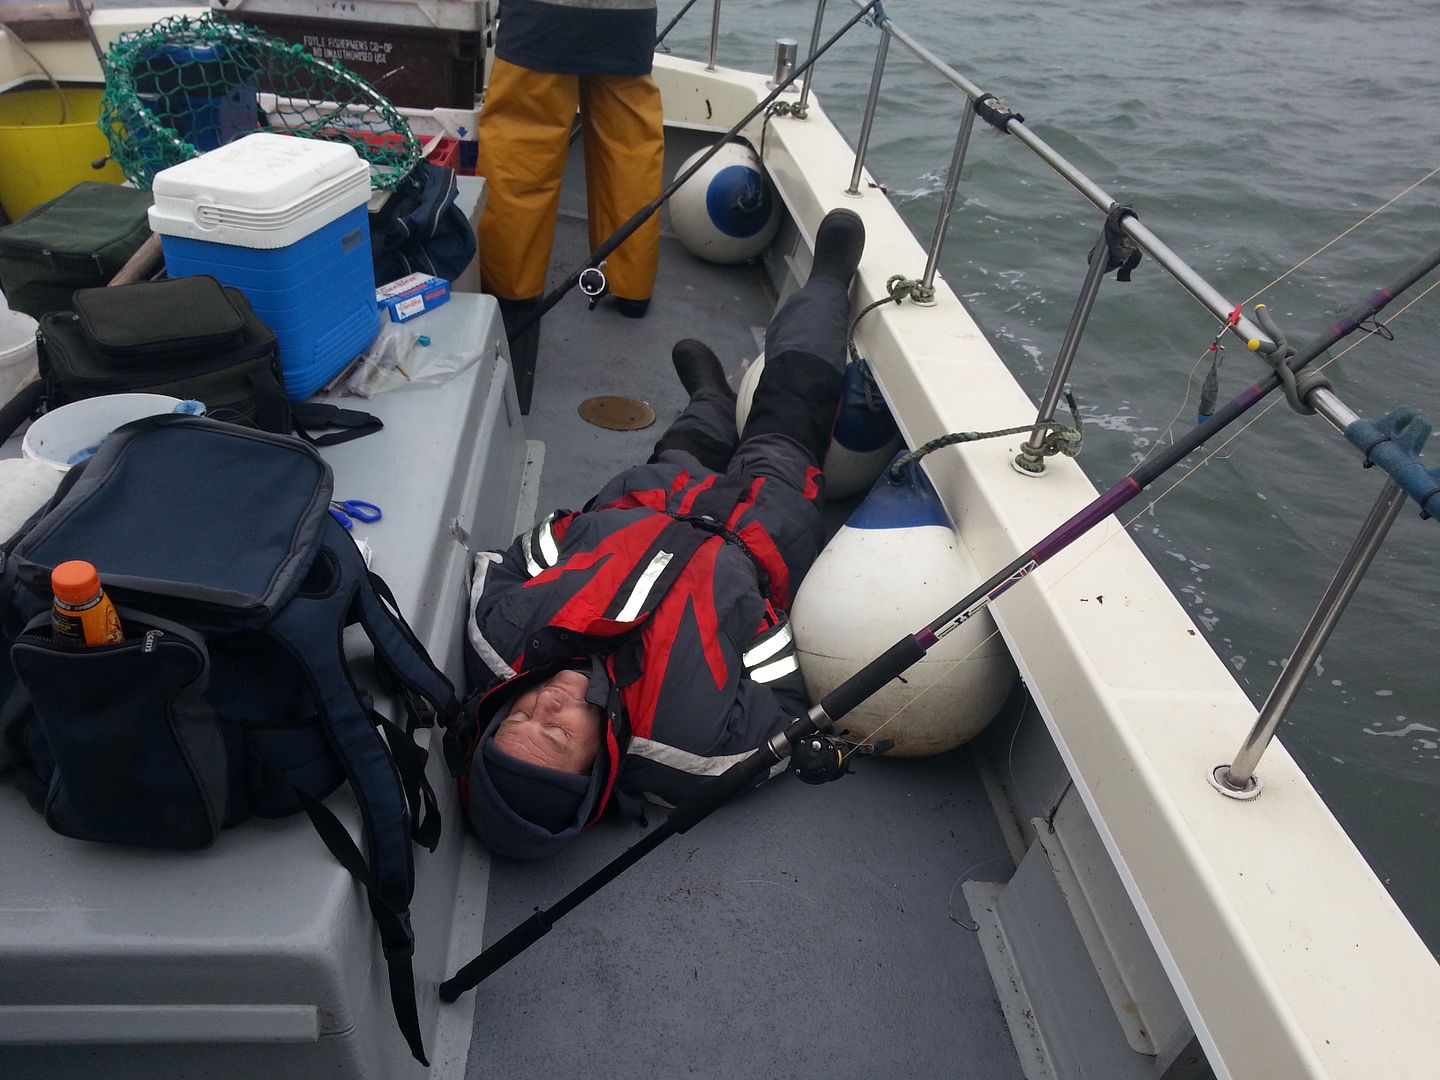 Sunday 23.11.2014 uptiding aboard two dogs Whitby WP_20141123_011_zps0be36496